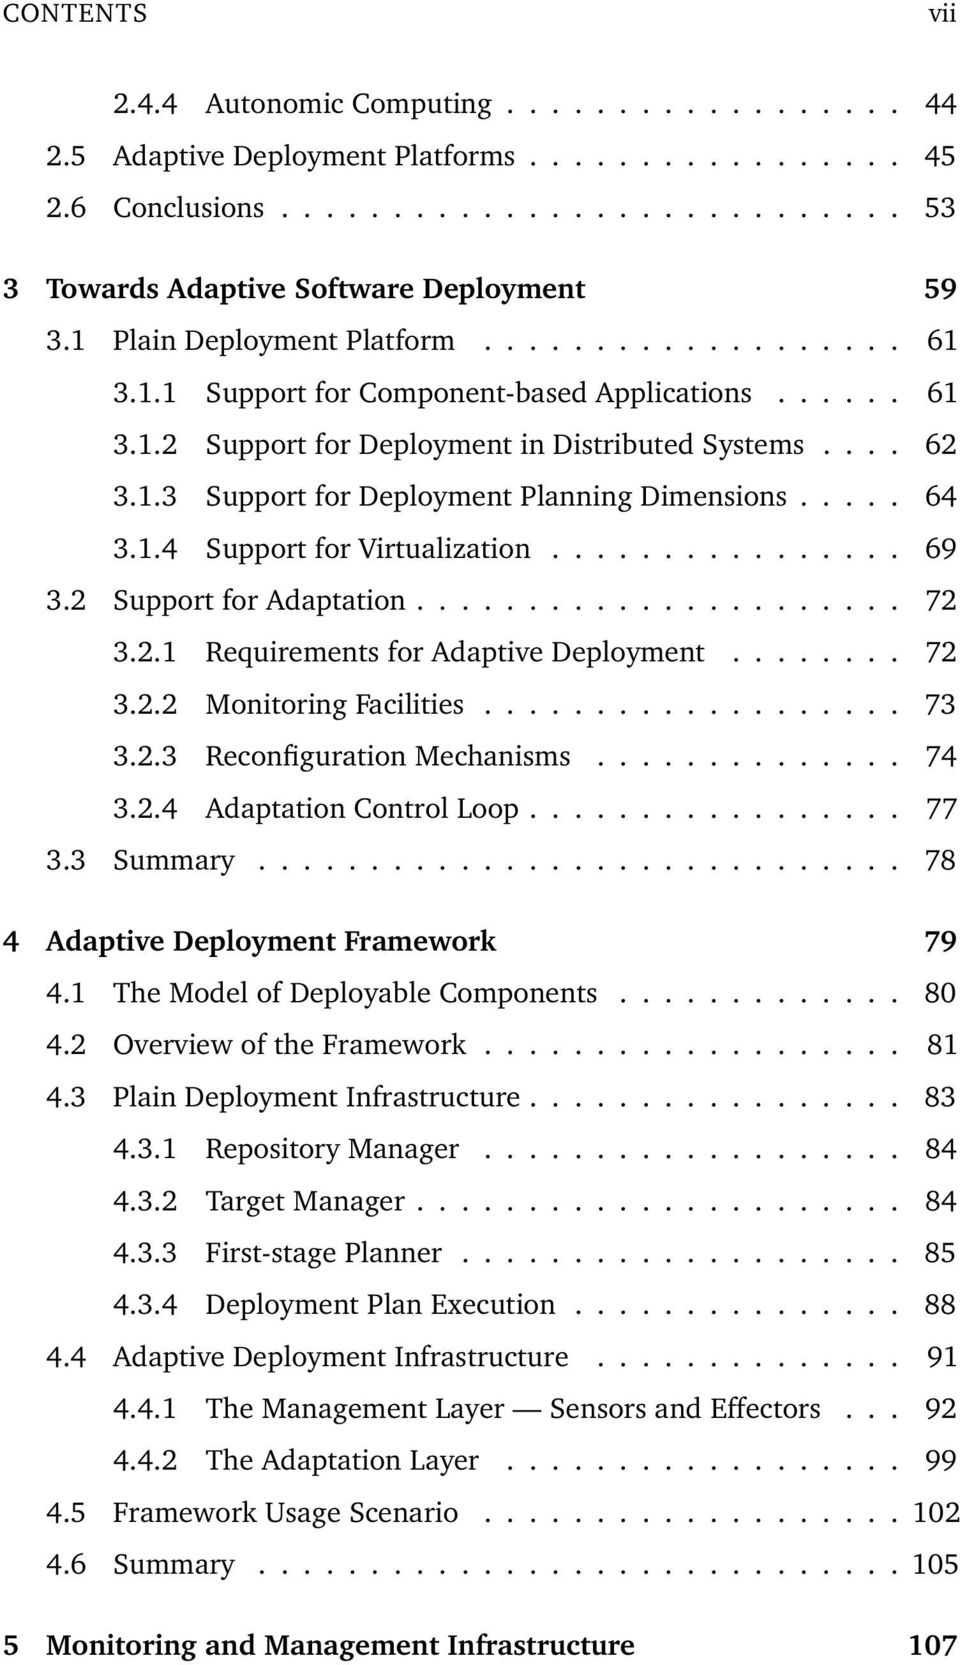 .... 64 3.1.4 Support for Virtualization................ 69 3.2 Support for Adaptation...................... 72 3.2.1 Requirements for Adaptive Deployment........ 72 3.2.2 Monitoring Facilities................... 73 3.